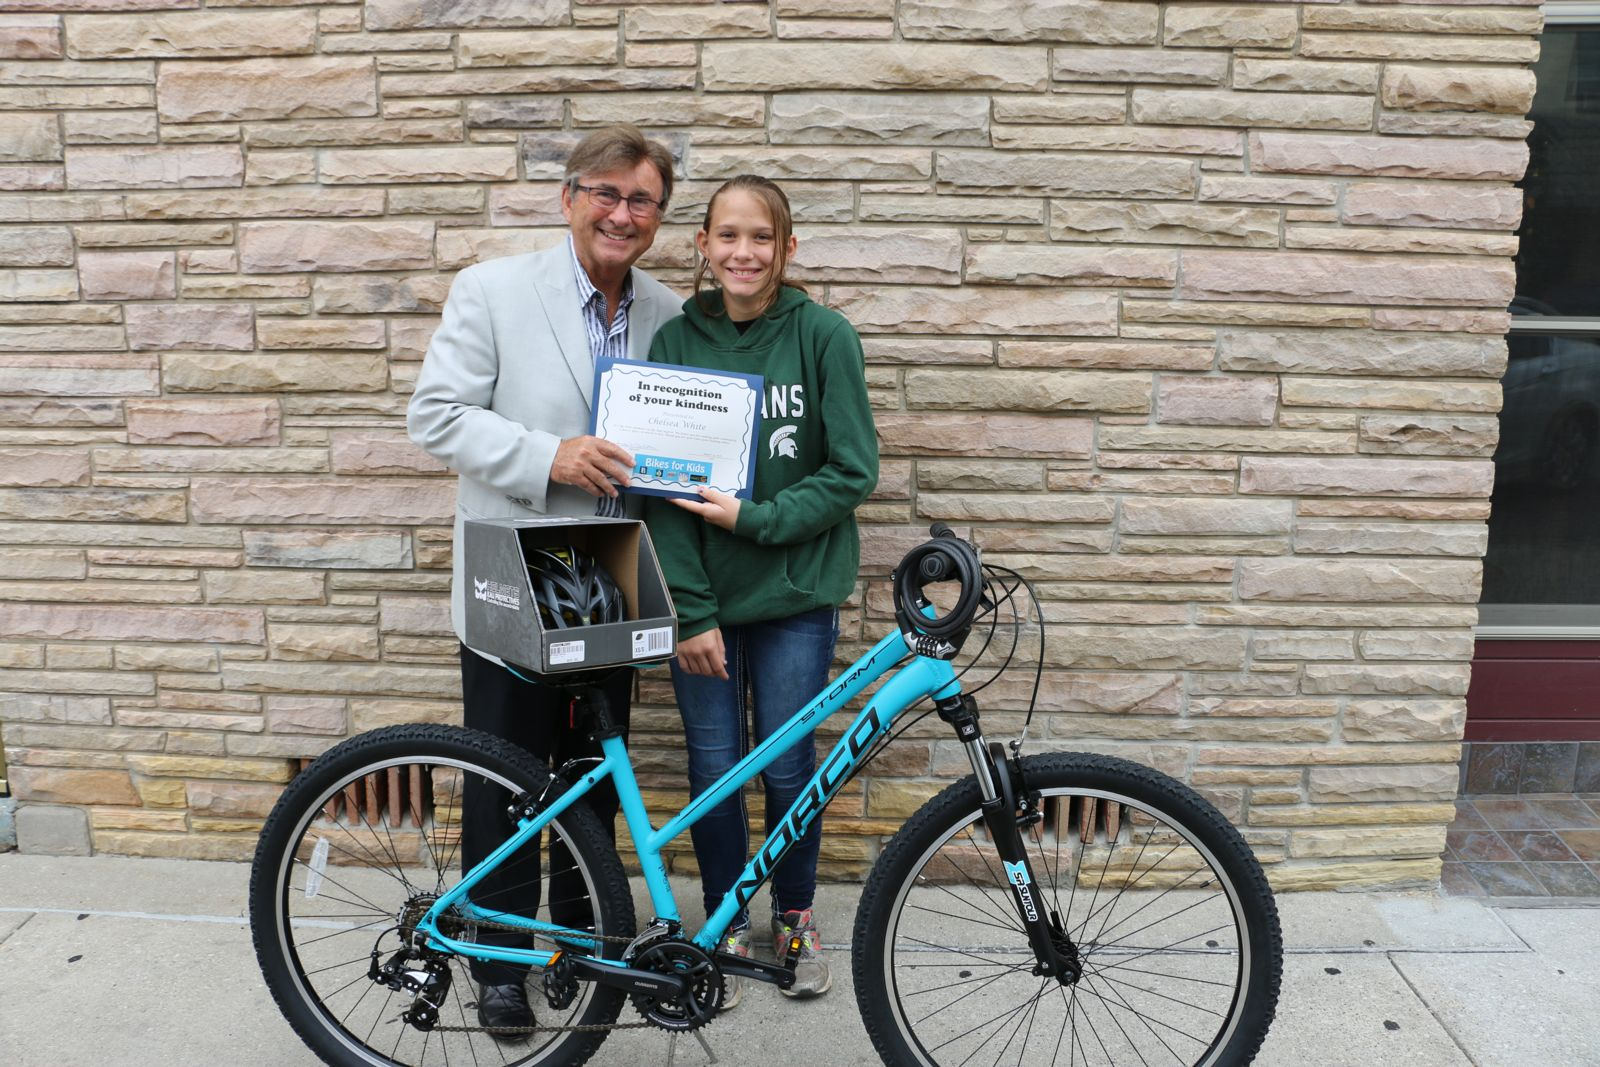 Joe Barberi and Chelsea White - Bikes for Kids winner 2016